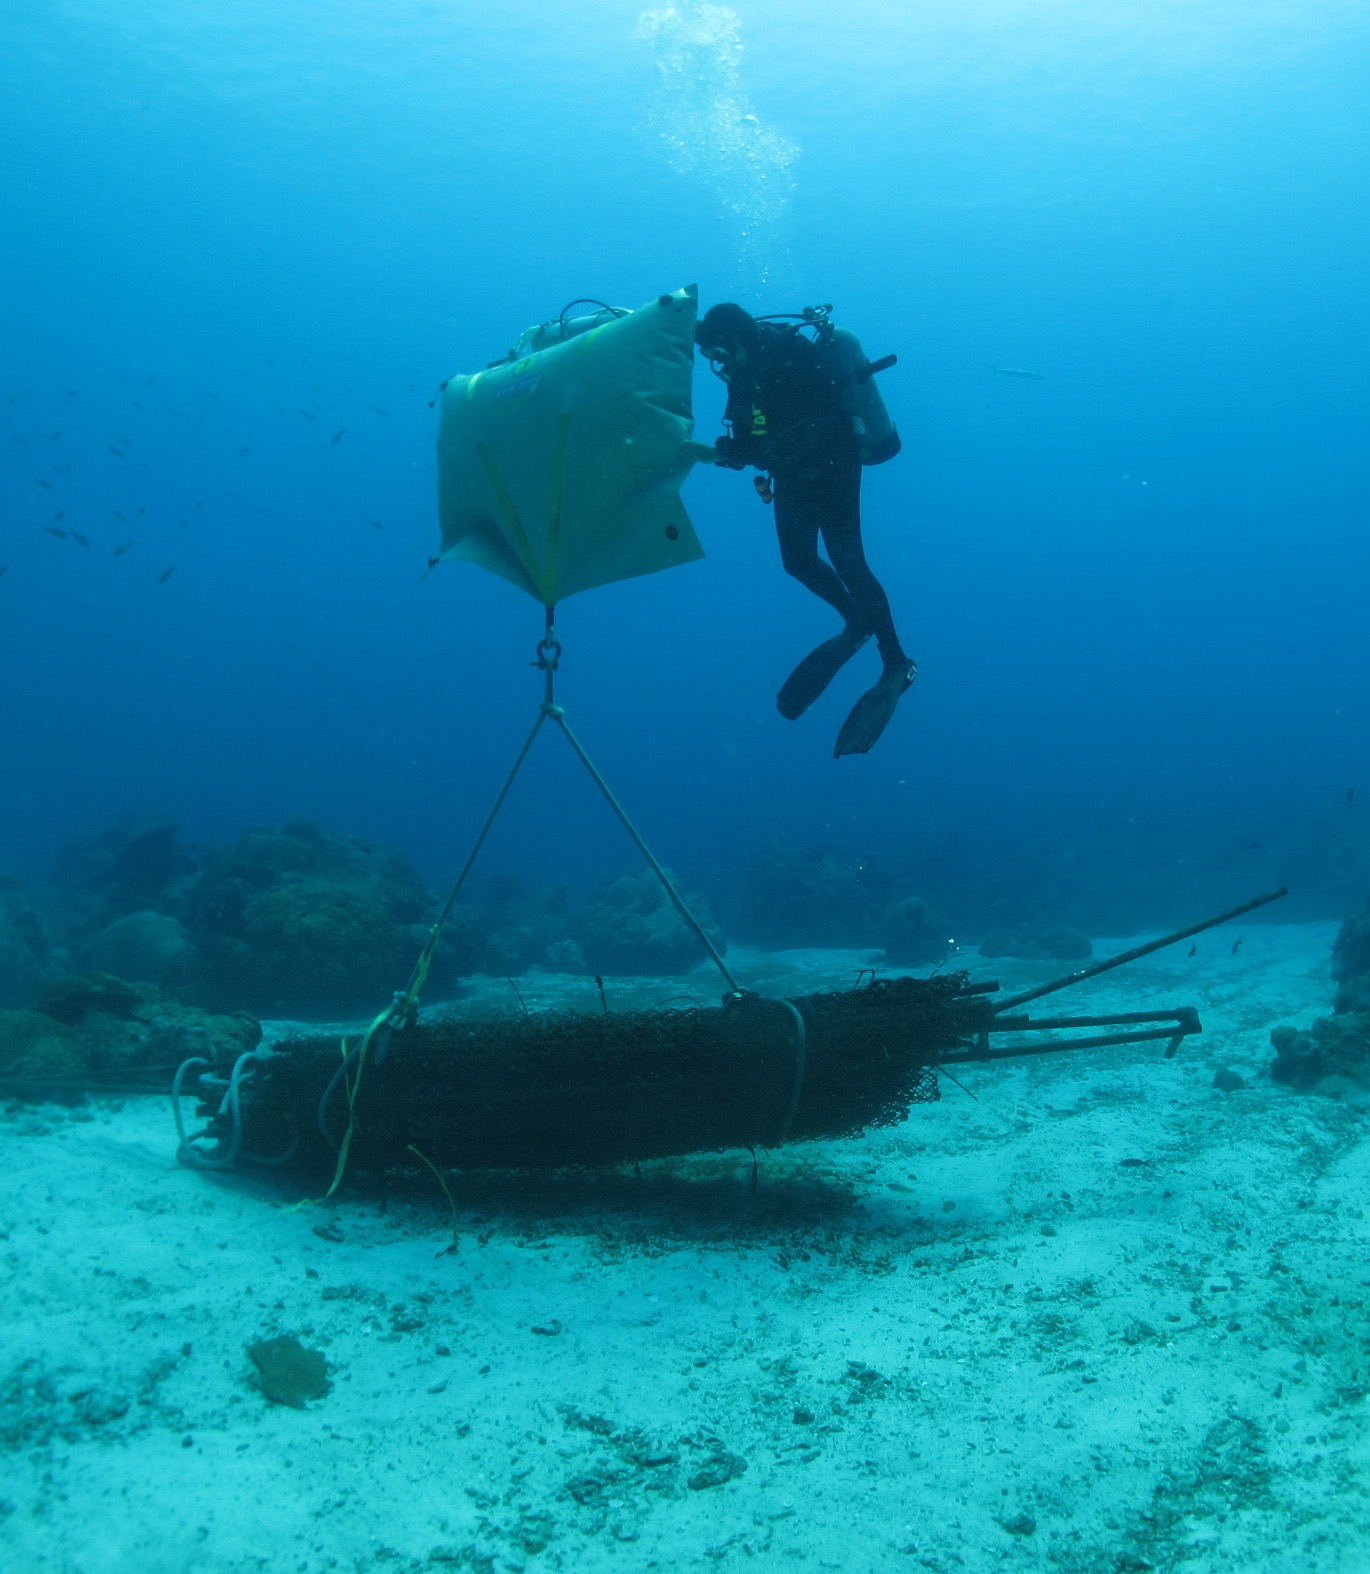 A Diver Filling Lift Bag Being Used To Heavy Debris Off The Seafloor